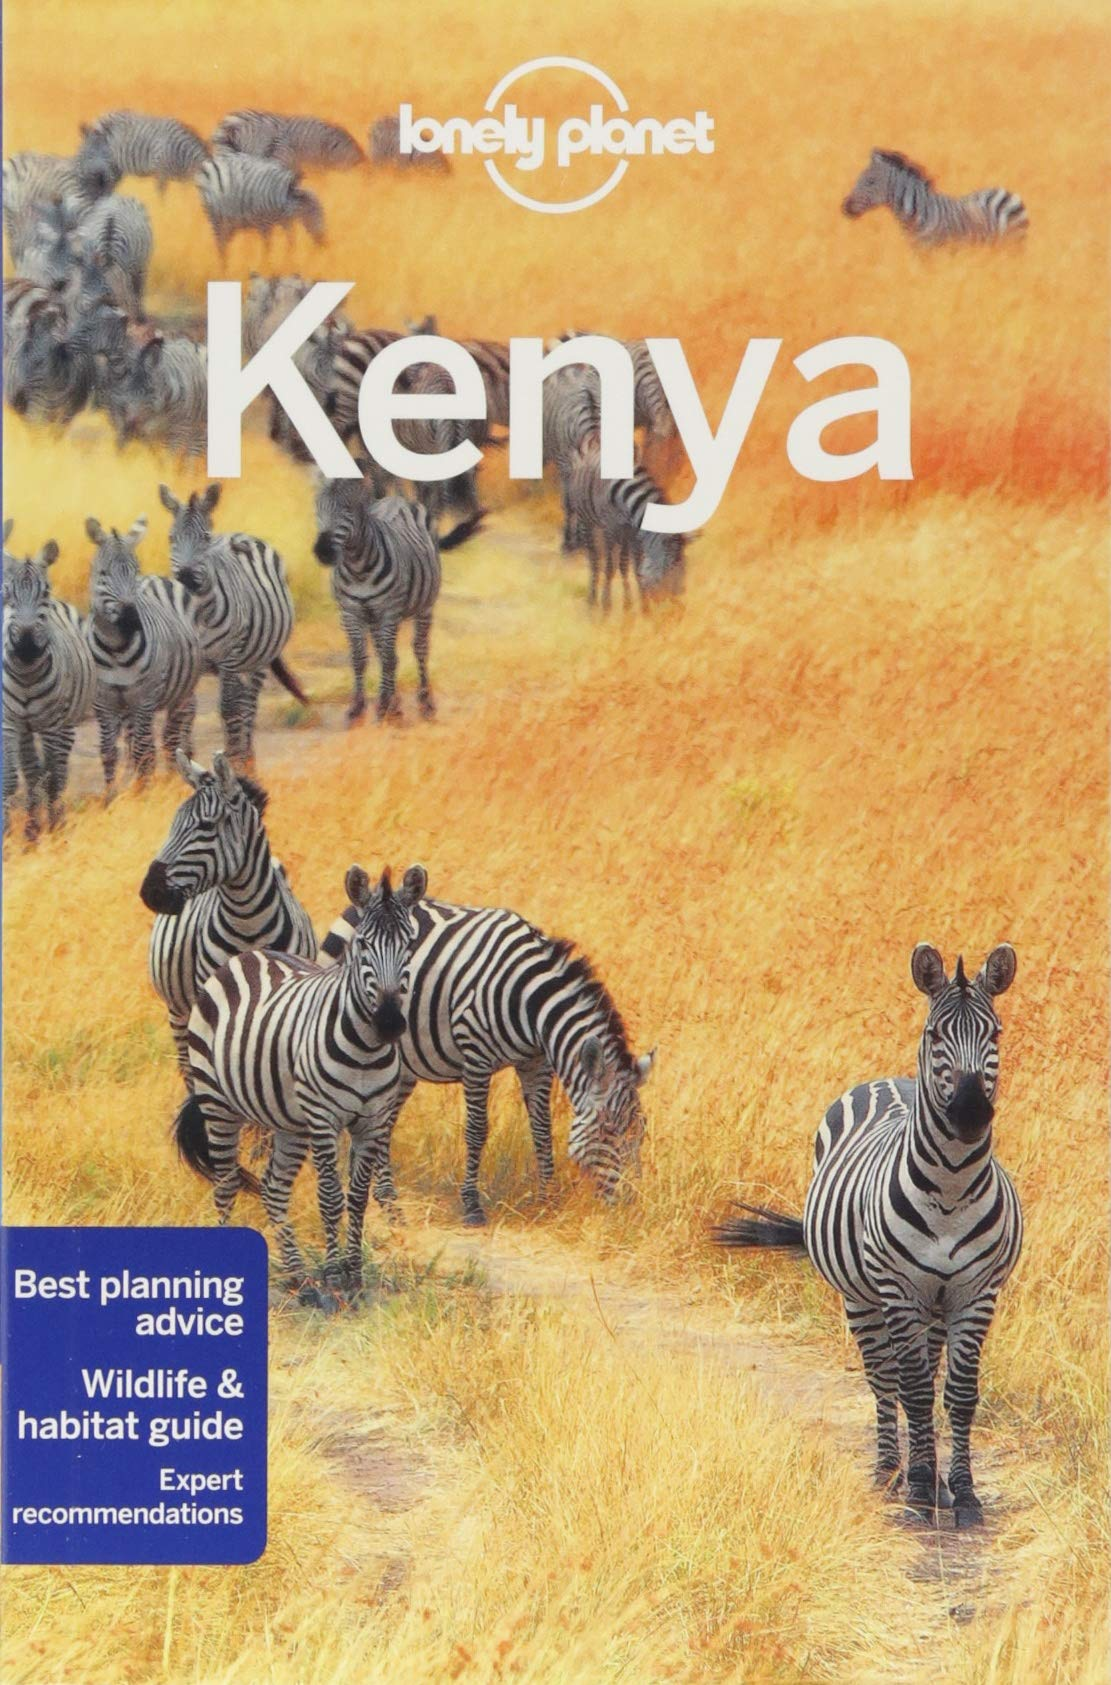 Kenya (Lonely Planet)